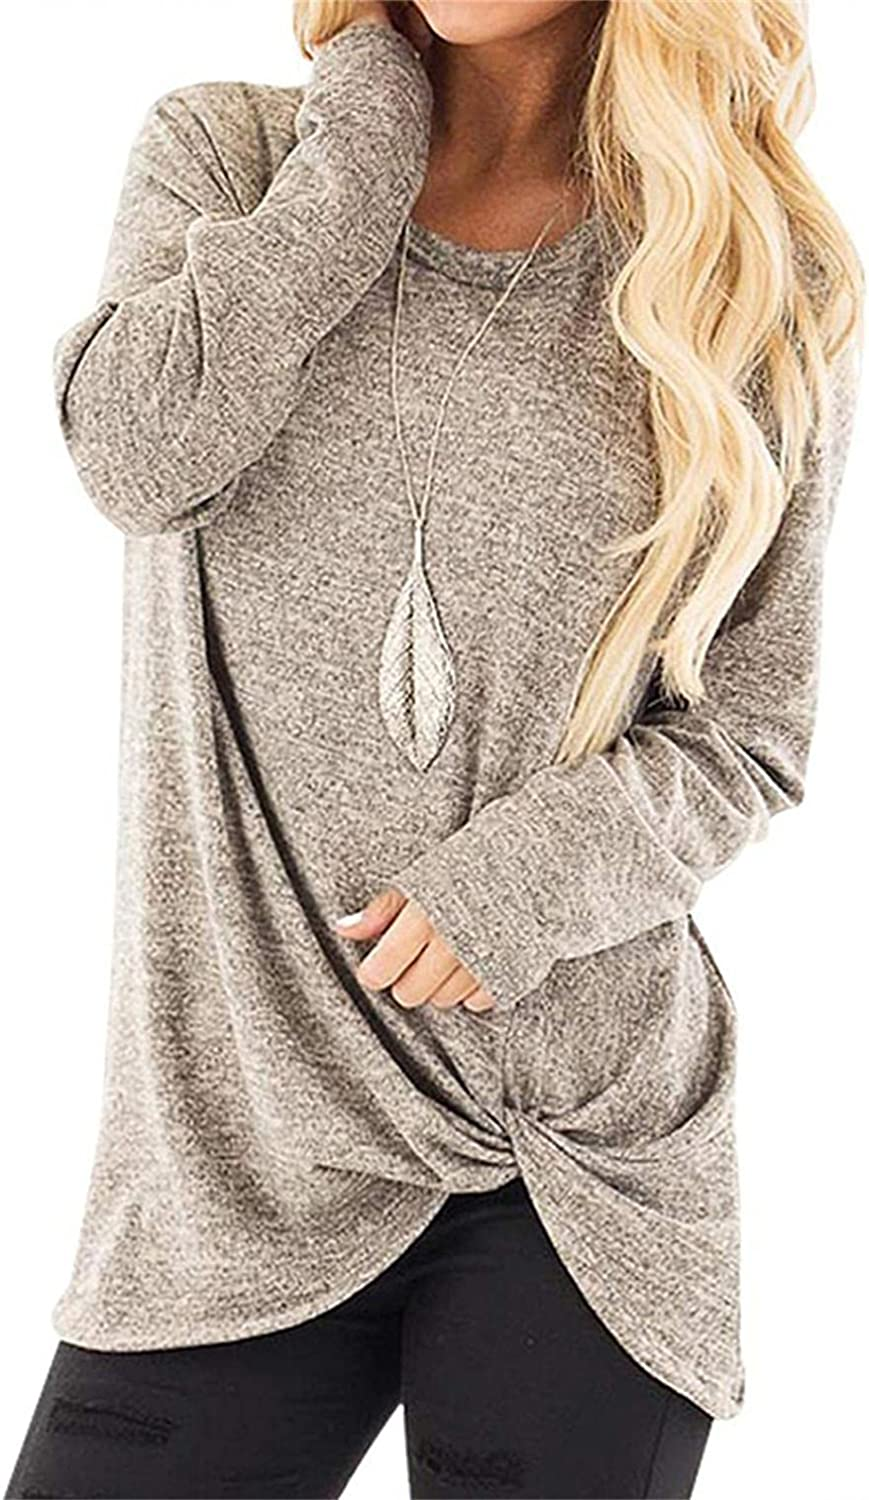 felwors Sweatshirt for Women,Womens Solid Color Tops Long Sleeve Crewneck Sweatshirts Casual Blouses Tunic Pullover